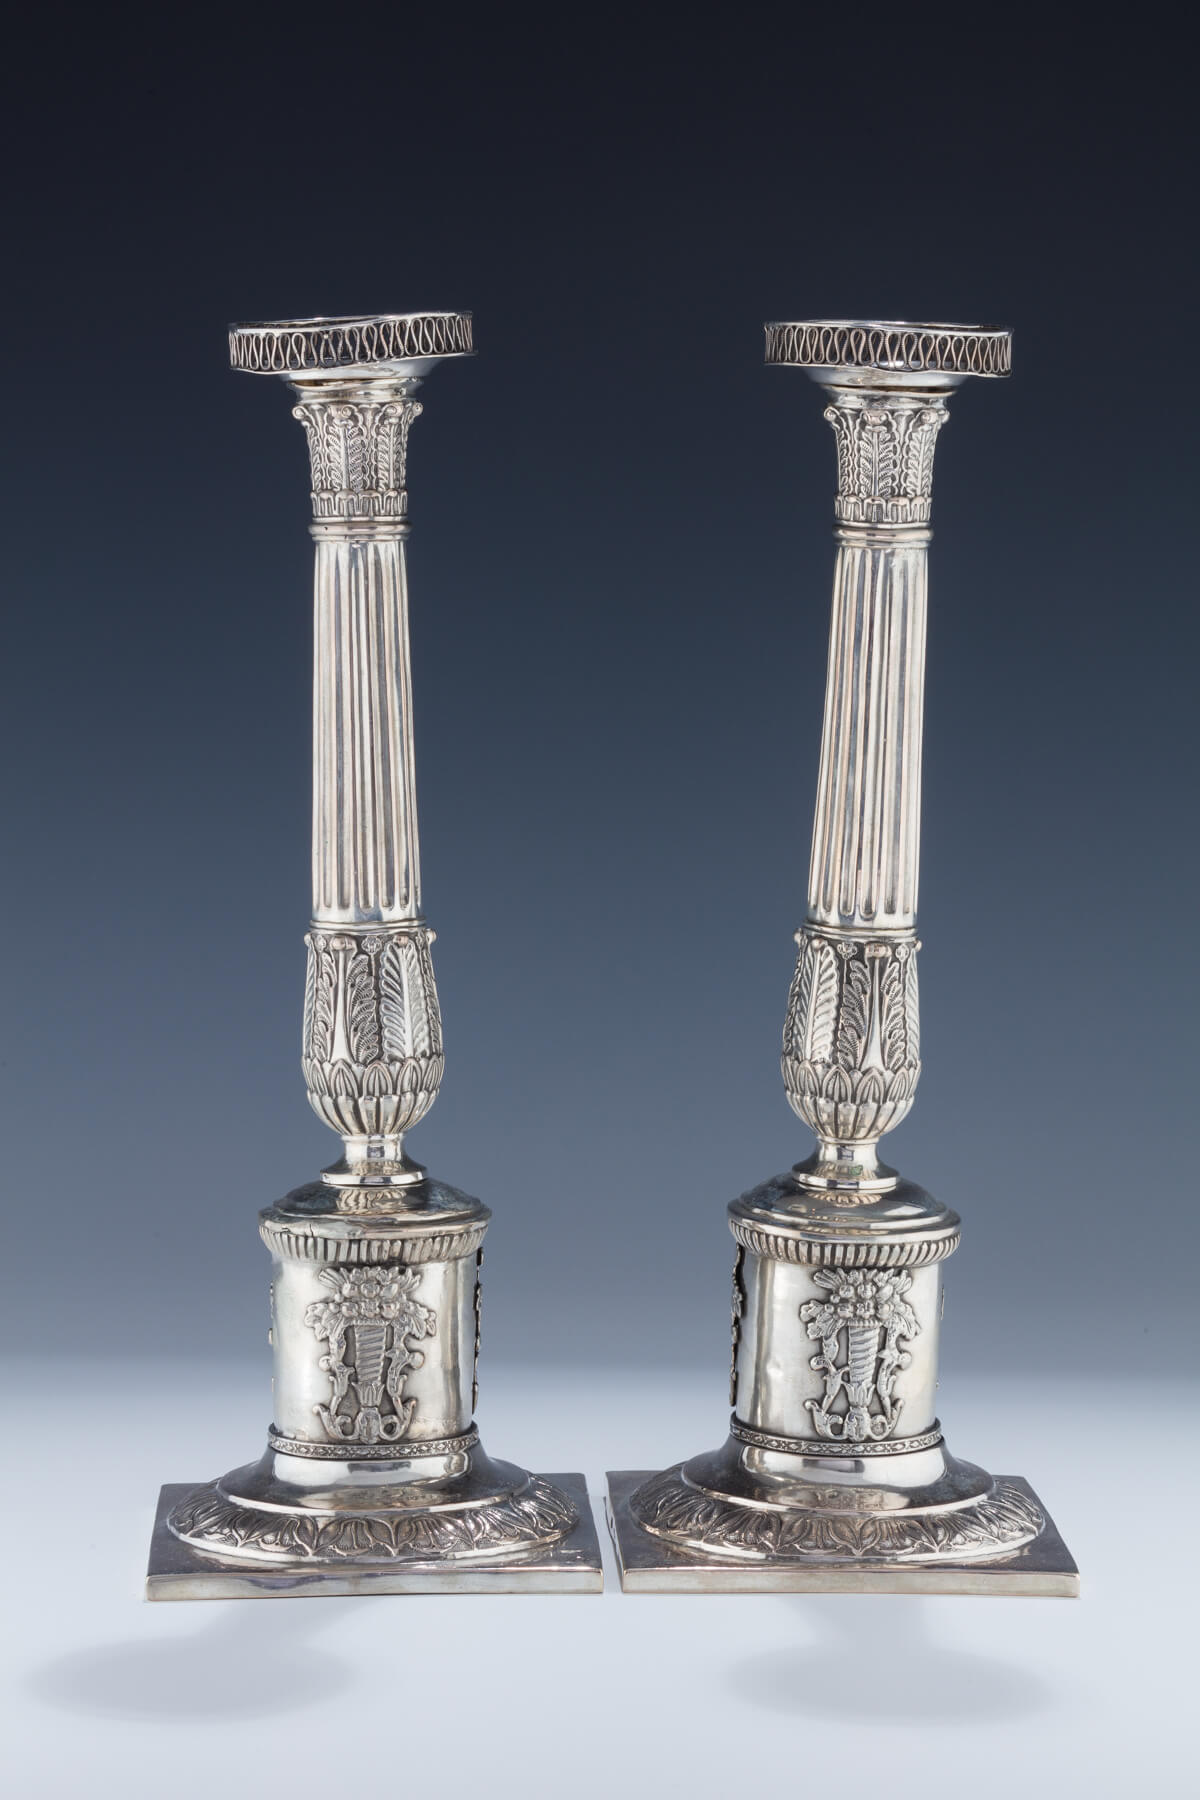 024. A Pair of Large Silver Candlesticks